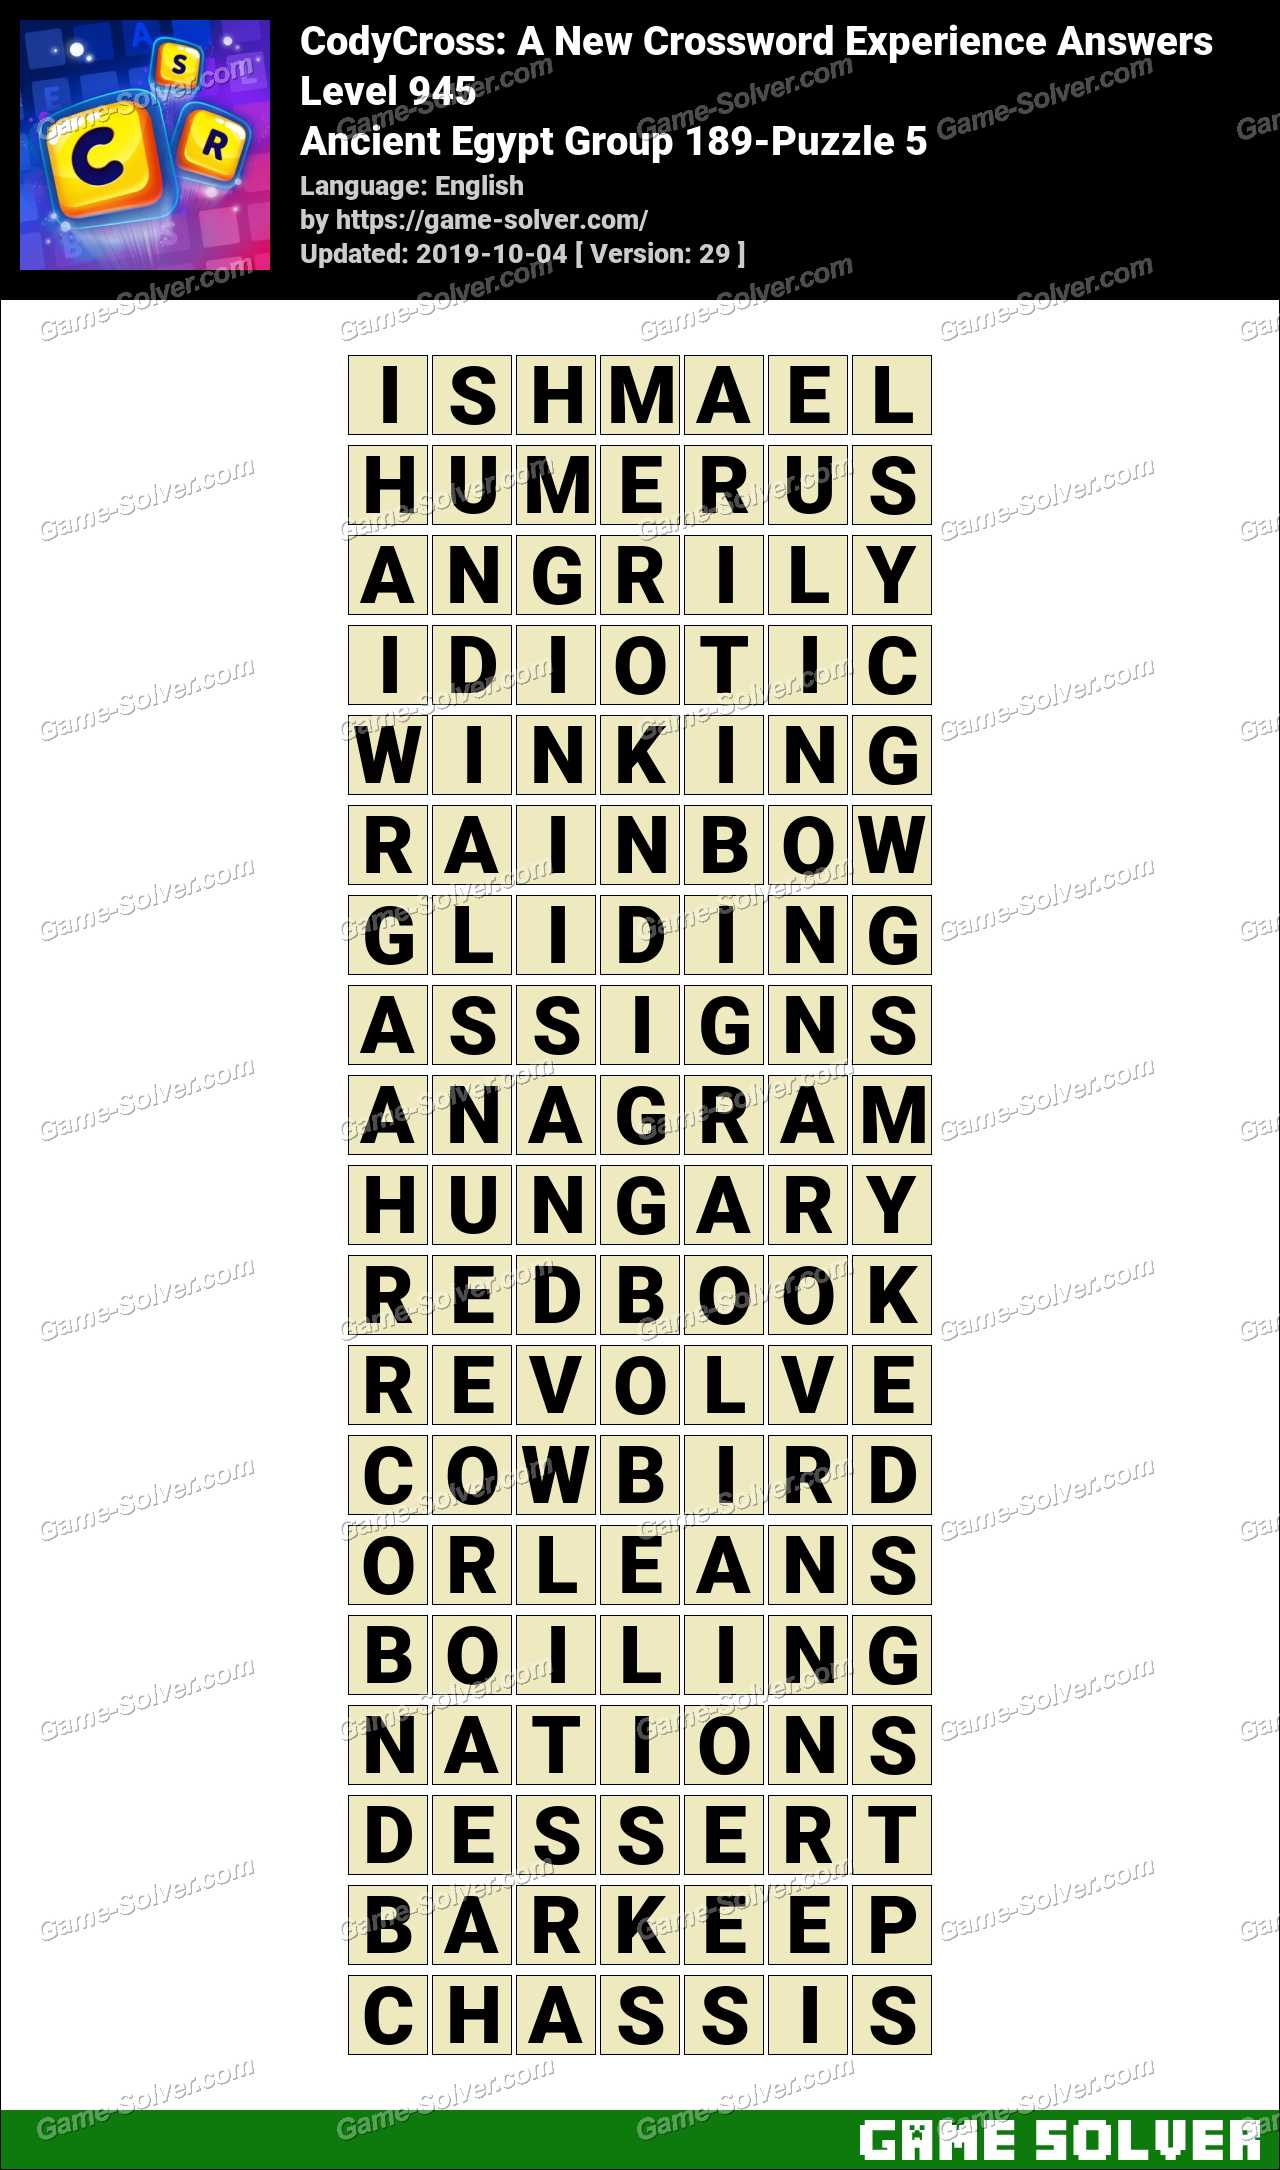 CodyCross Ancient Egypt Group 189-Puzzle 5 Answers